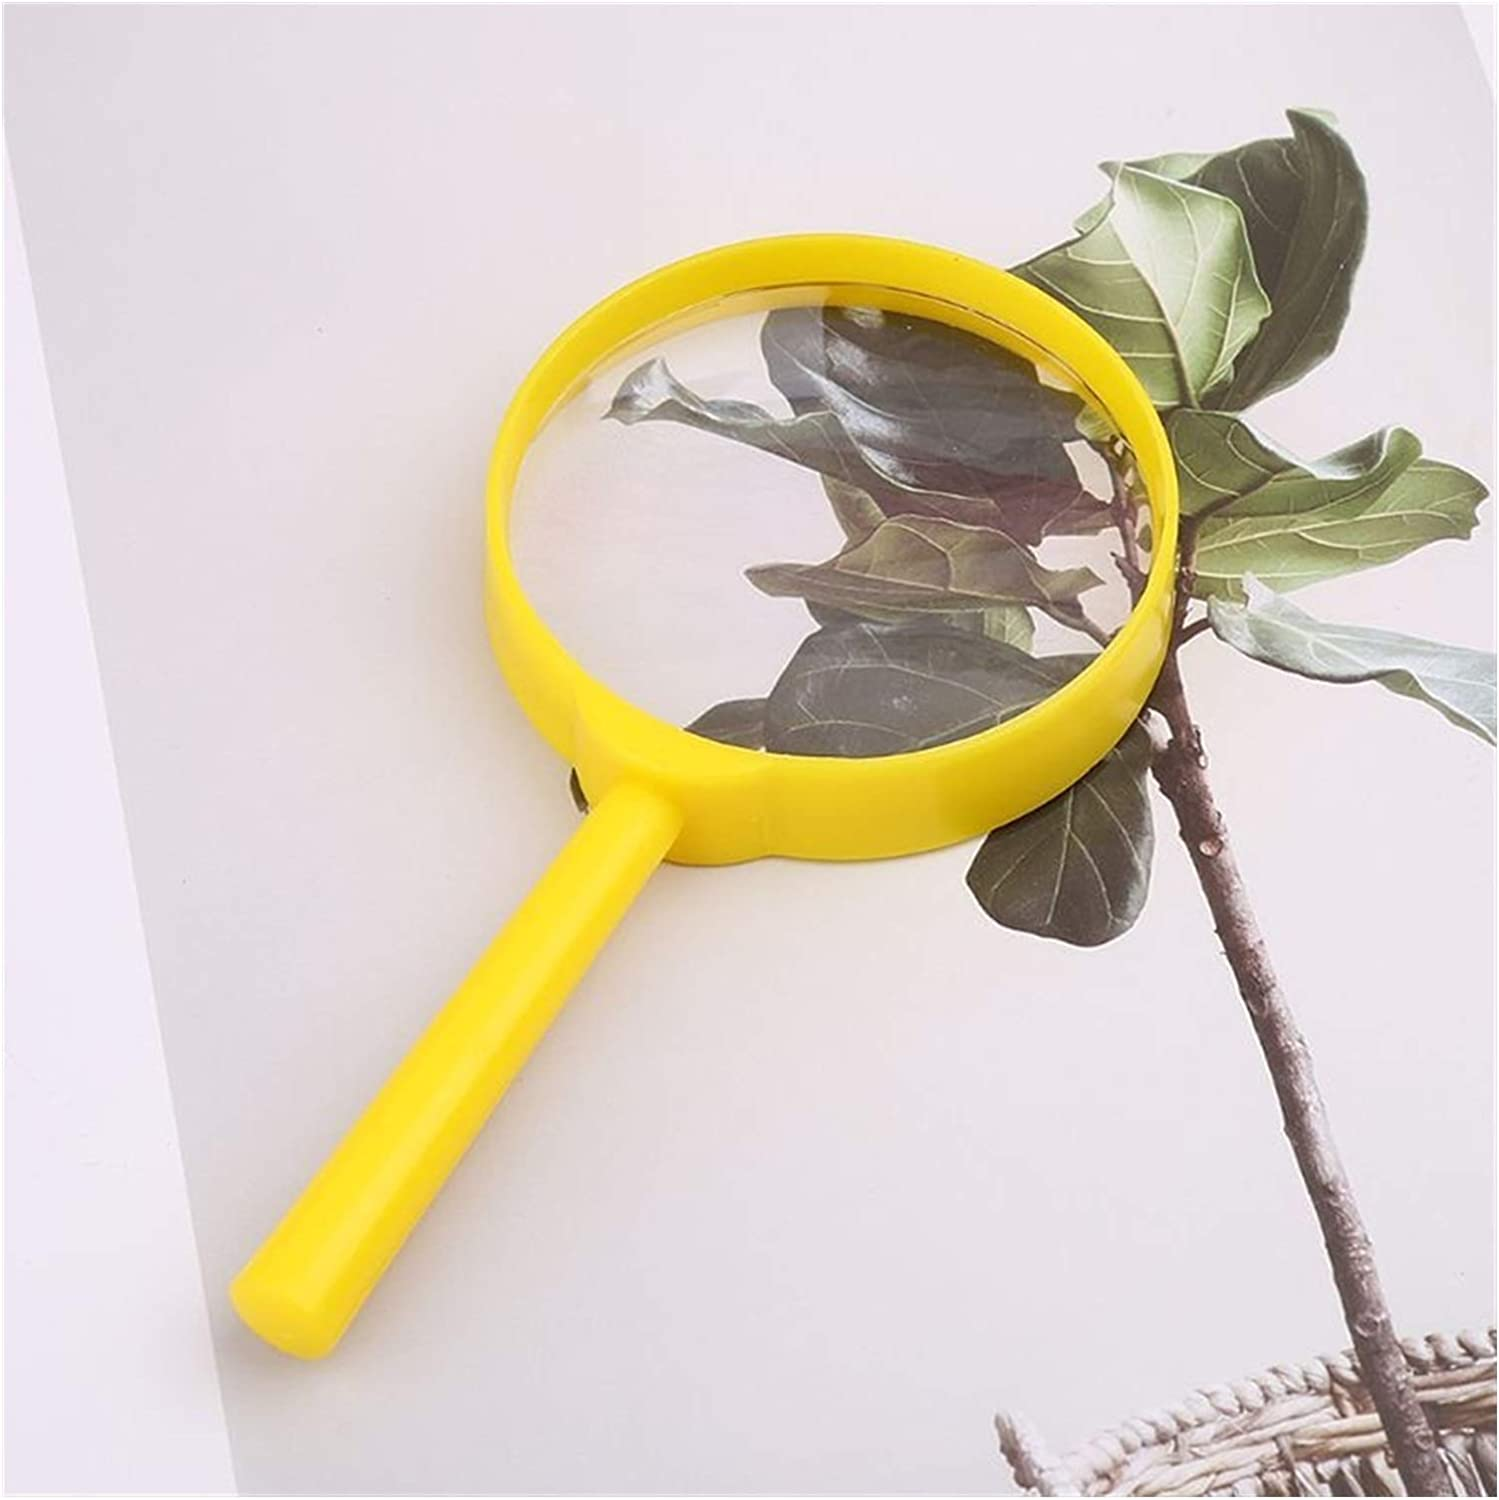 CMMWA Portable Reading Magnifier Handheld 55mm Ma 3X Shipping included Super popular specialty store HD